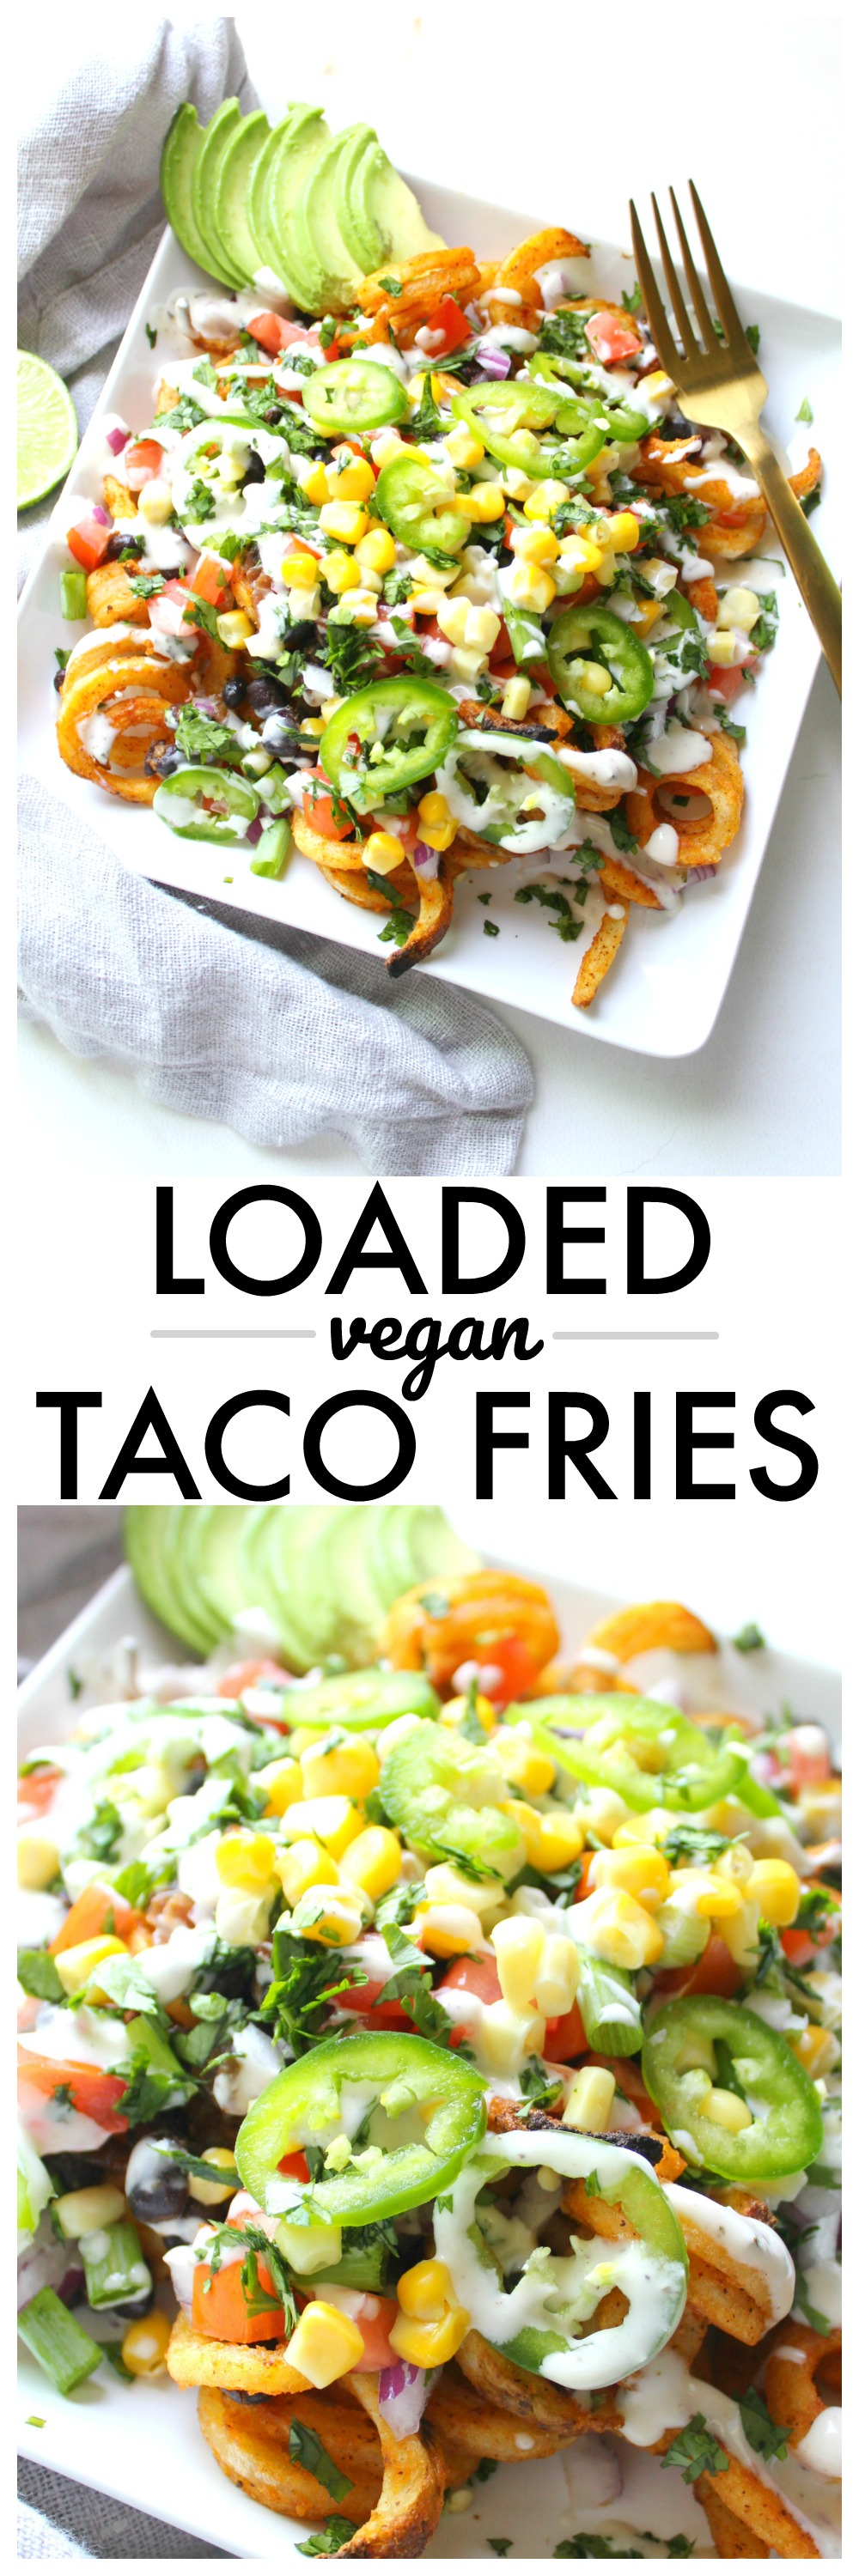 All of your favorite taco flavors come together with these Loaded Vegan Taco Fries. A fun game day snack or quick dinner #vegan #gamedaysnacks   ThisSavoryVegan.com